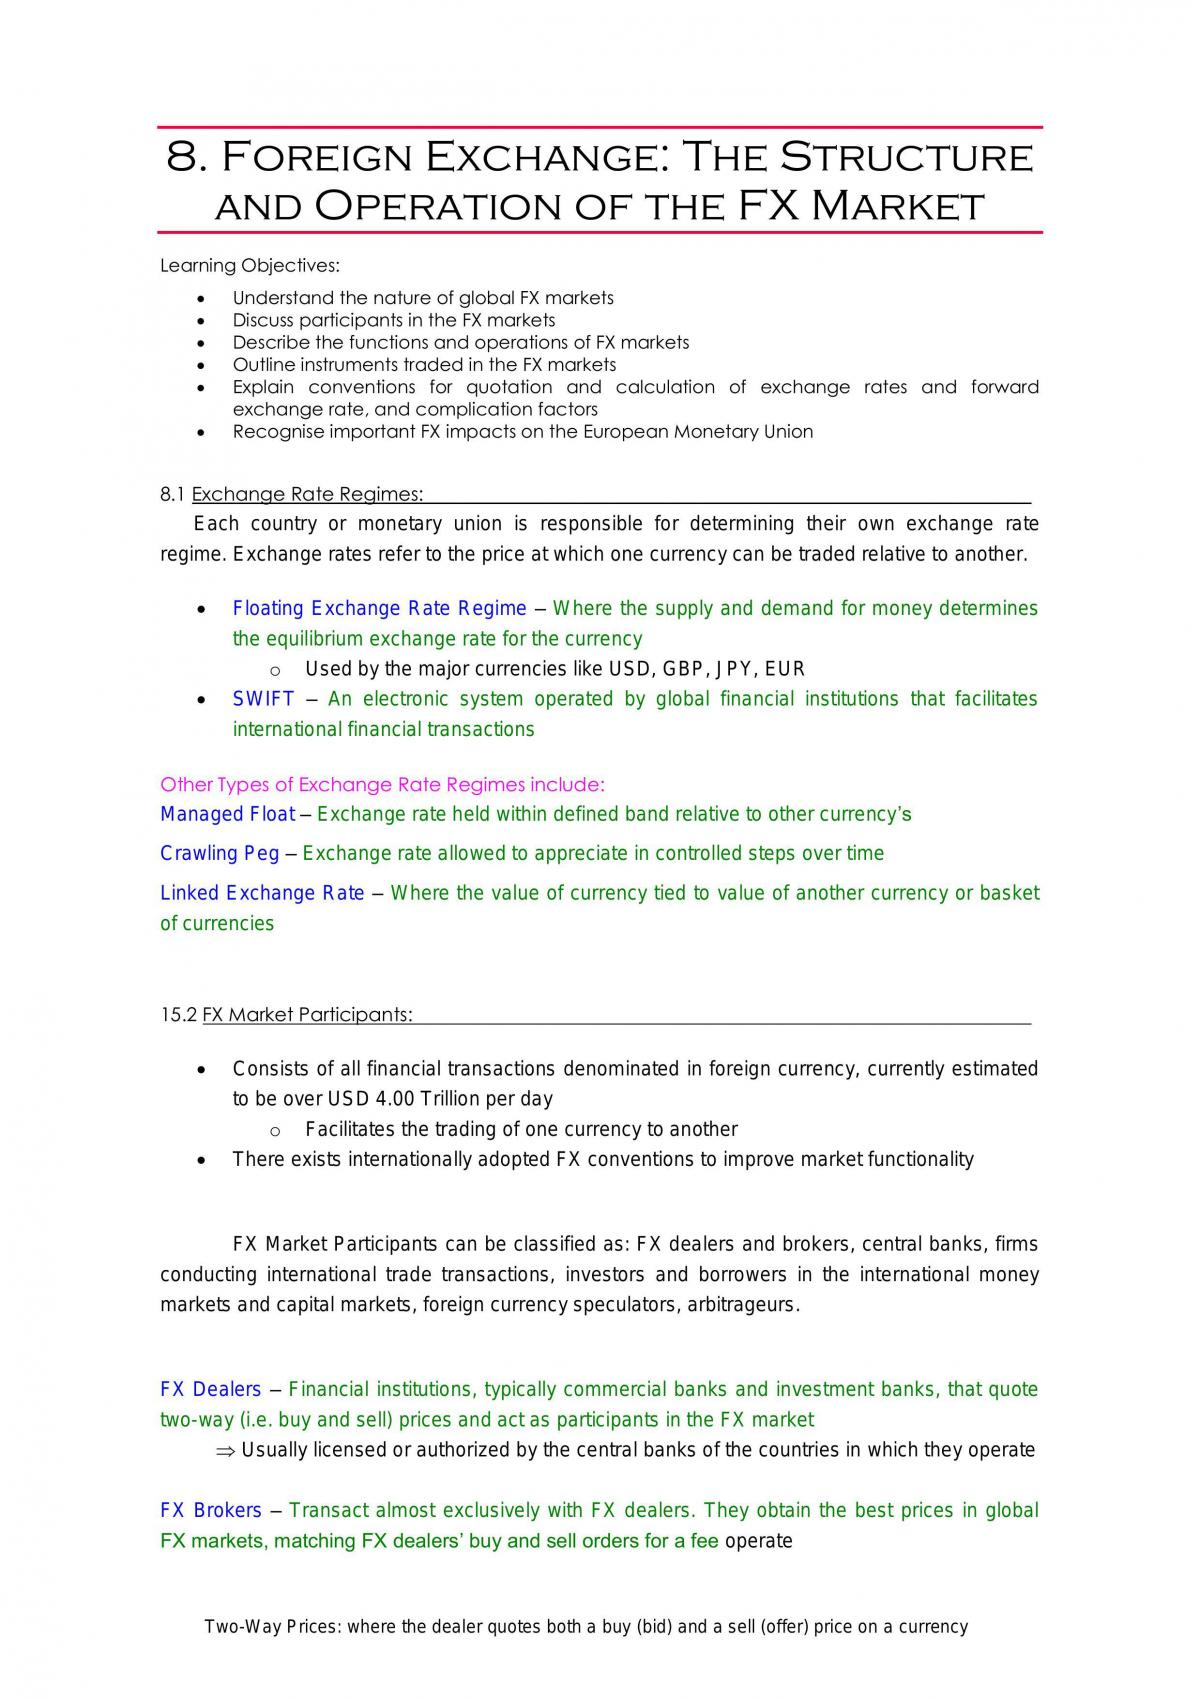 FINS1612 Notes - Page 1